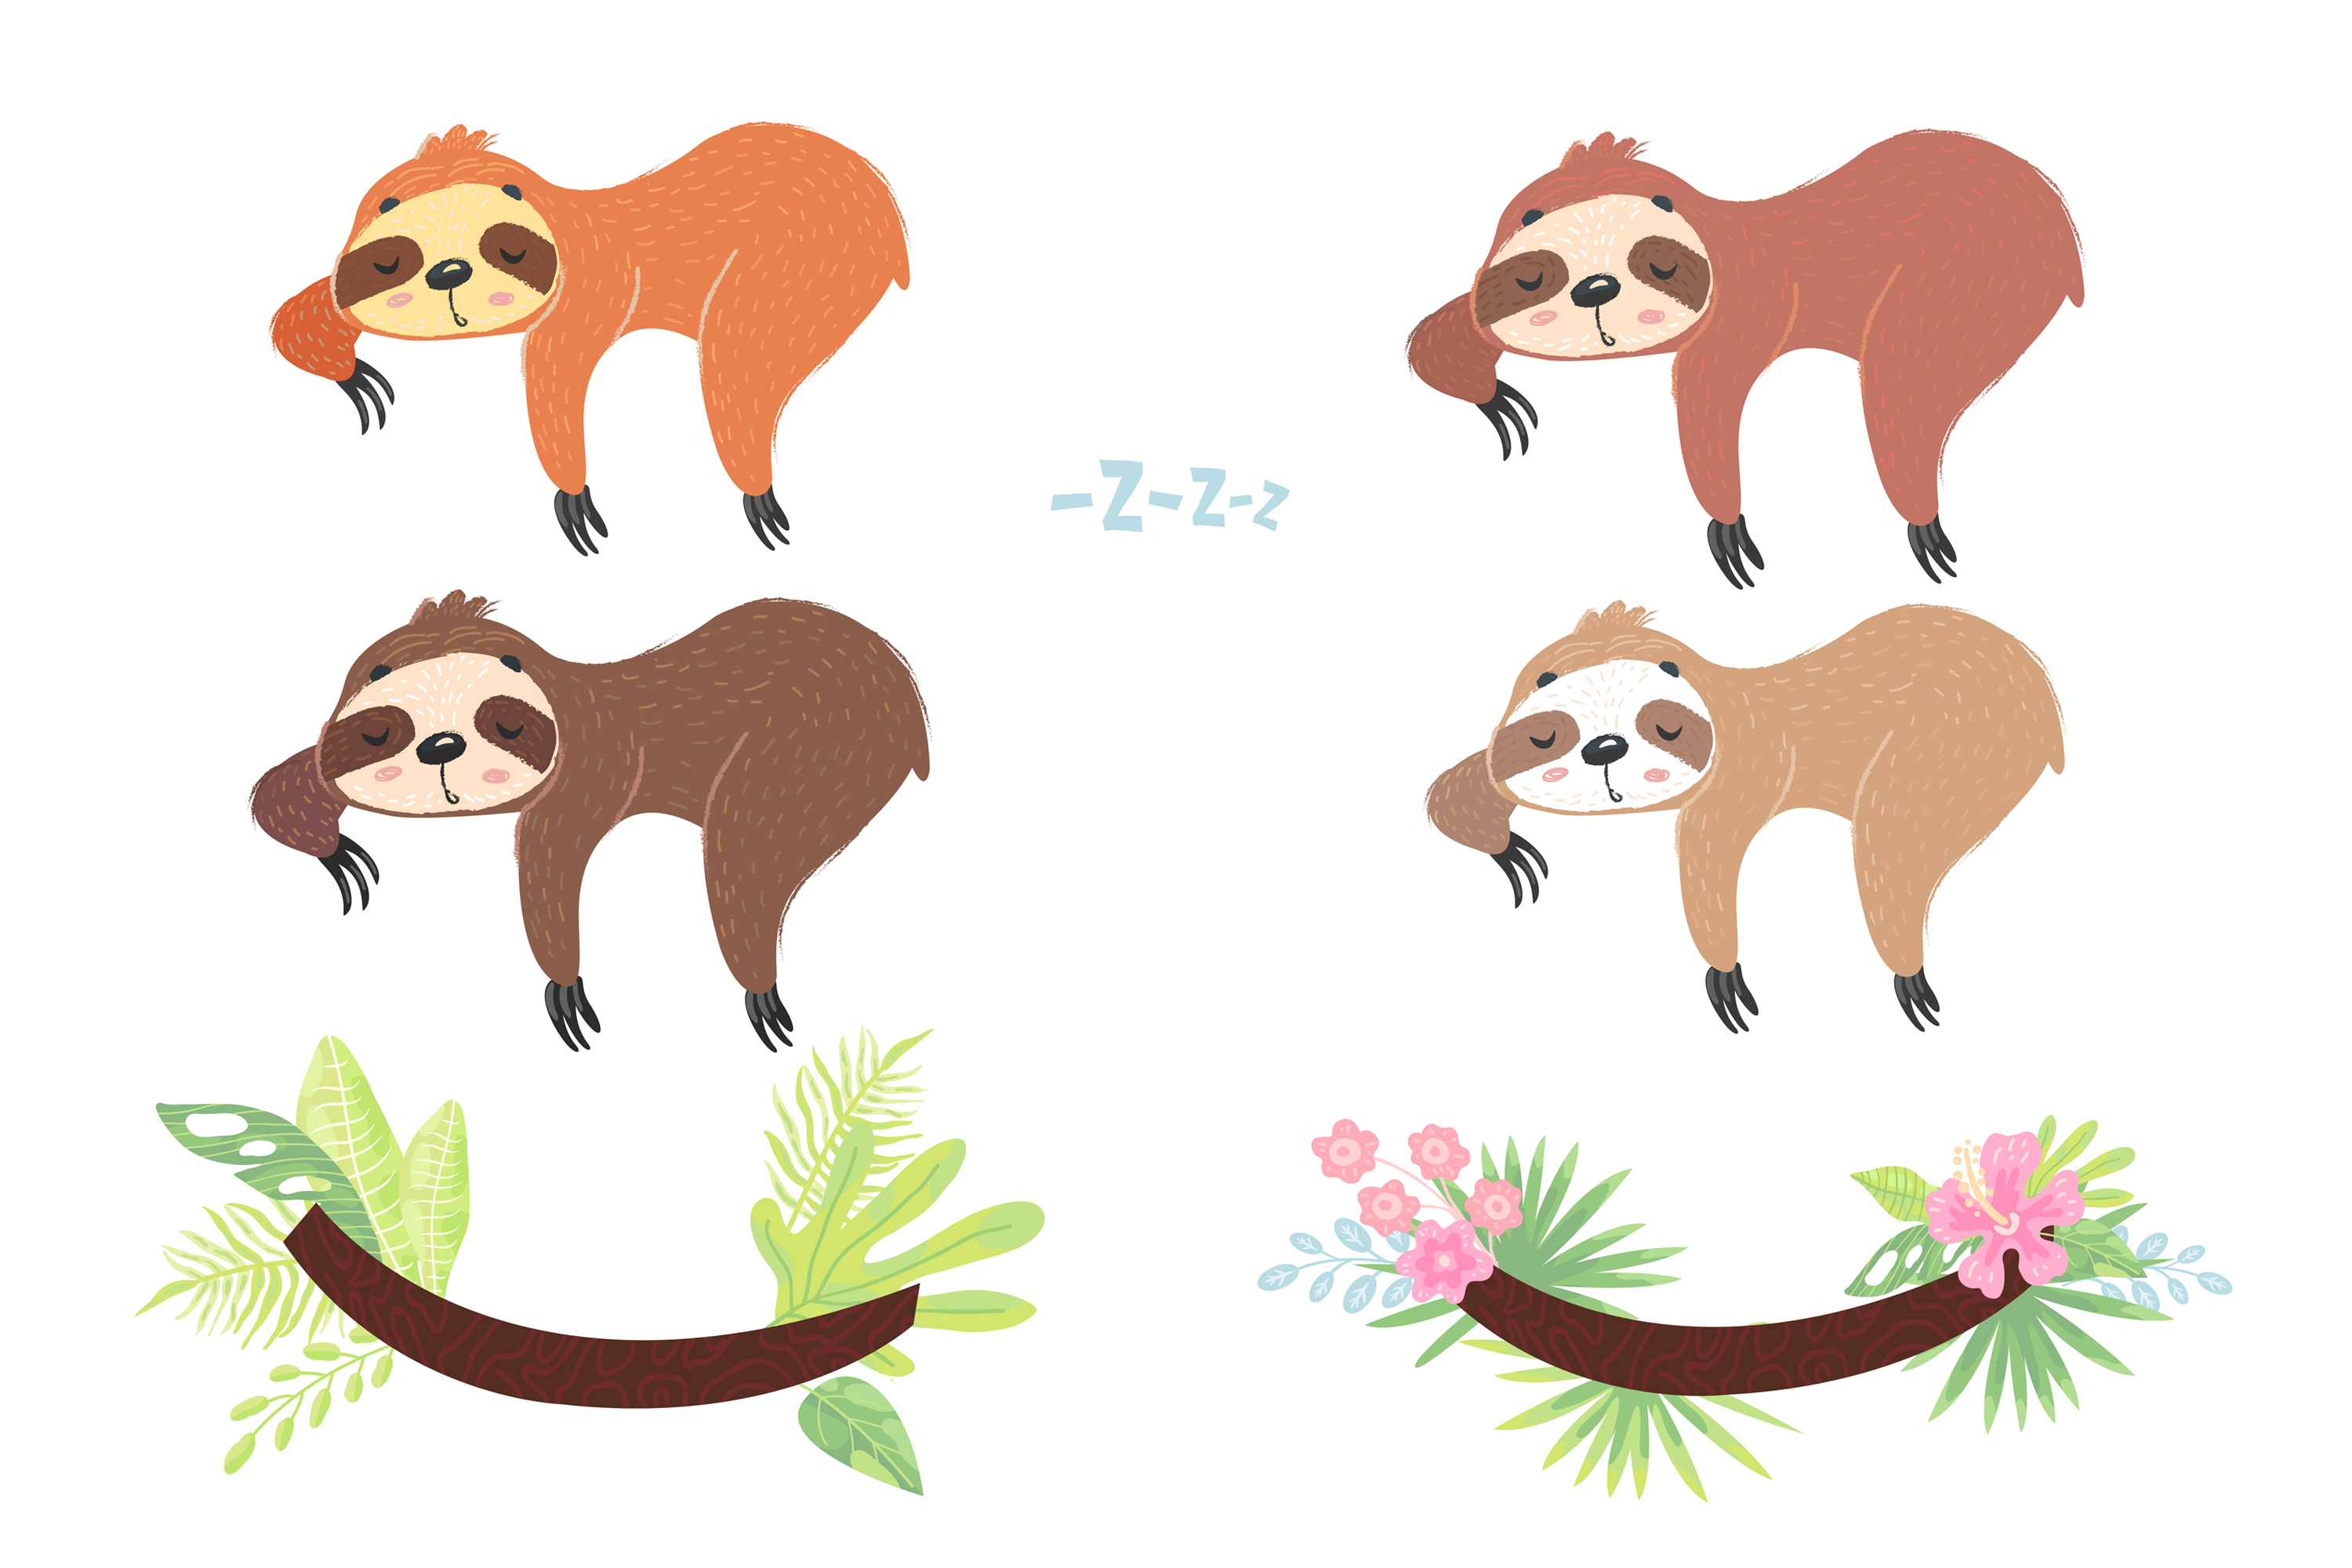 Sleepy Sloth Clipart Collection, Vector and Png example image 3